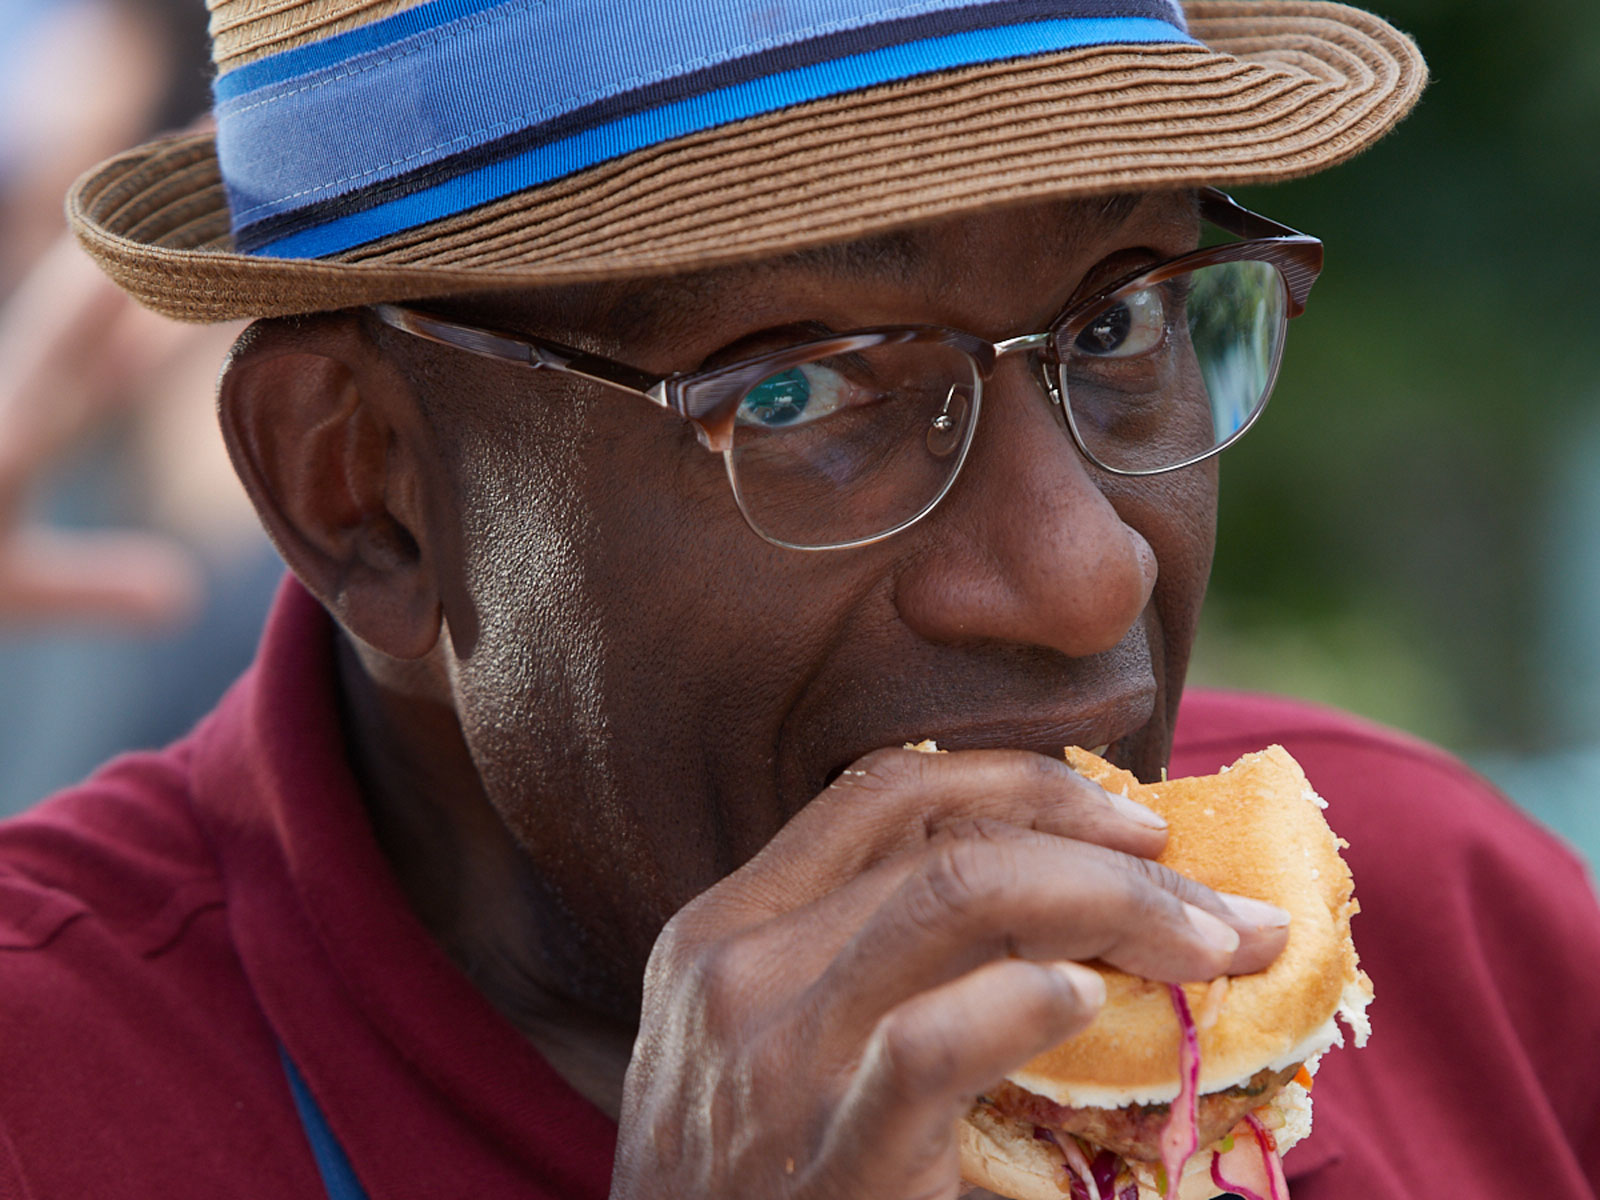 Al Roker's Signature Burger, Plus His Best Tips for Manning the Grill